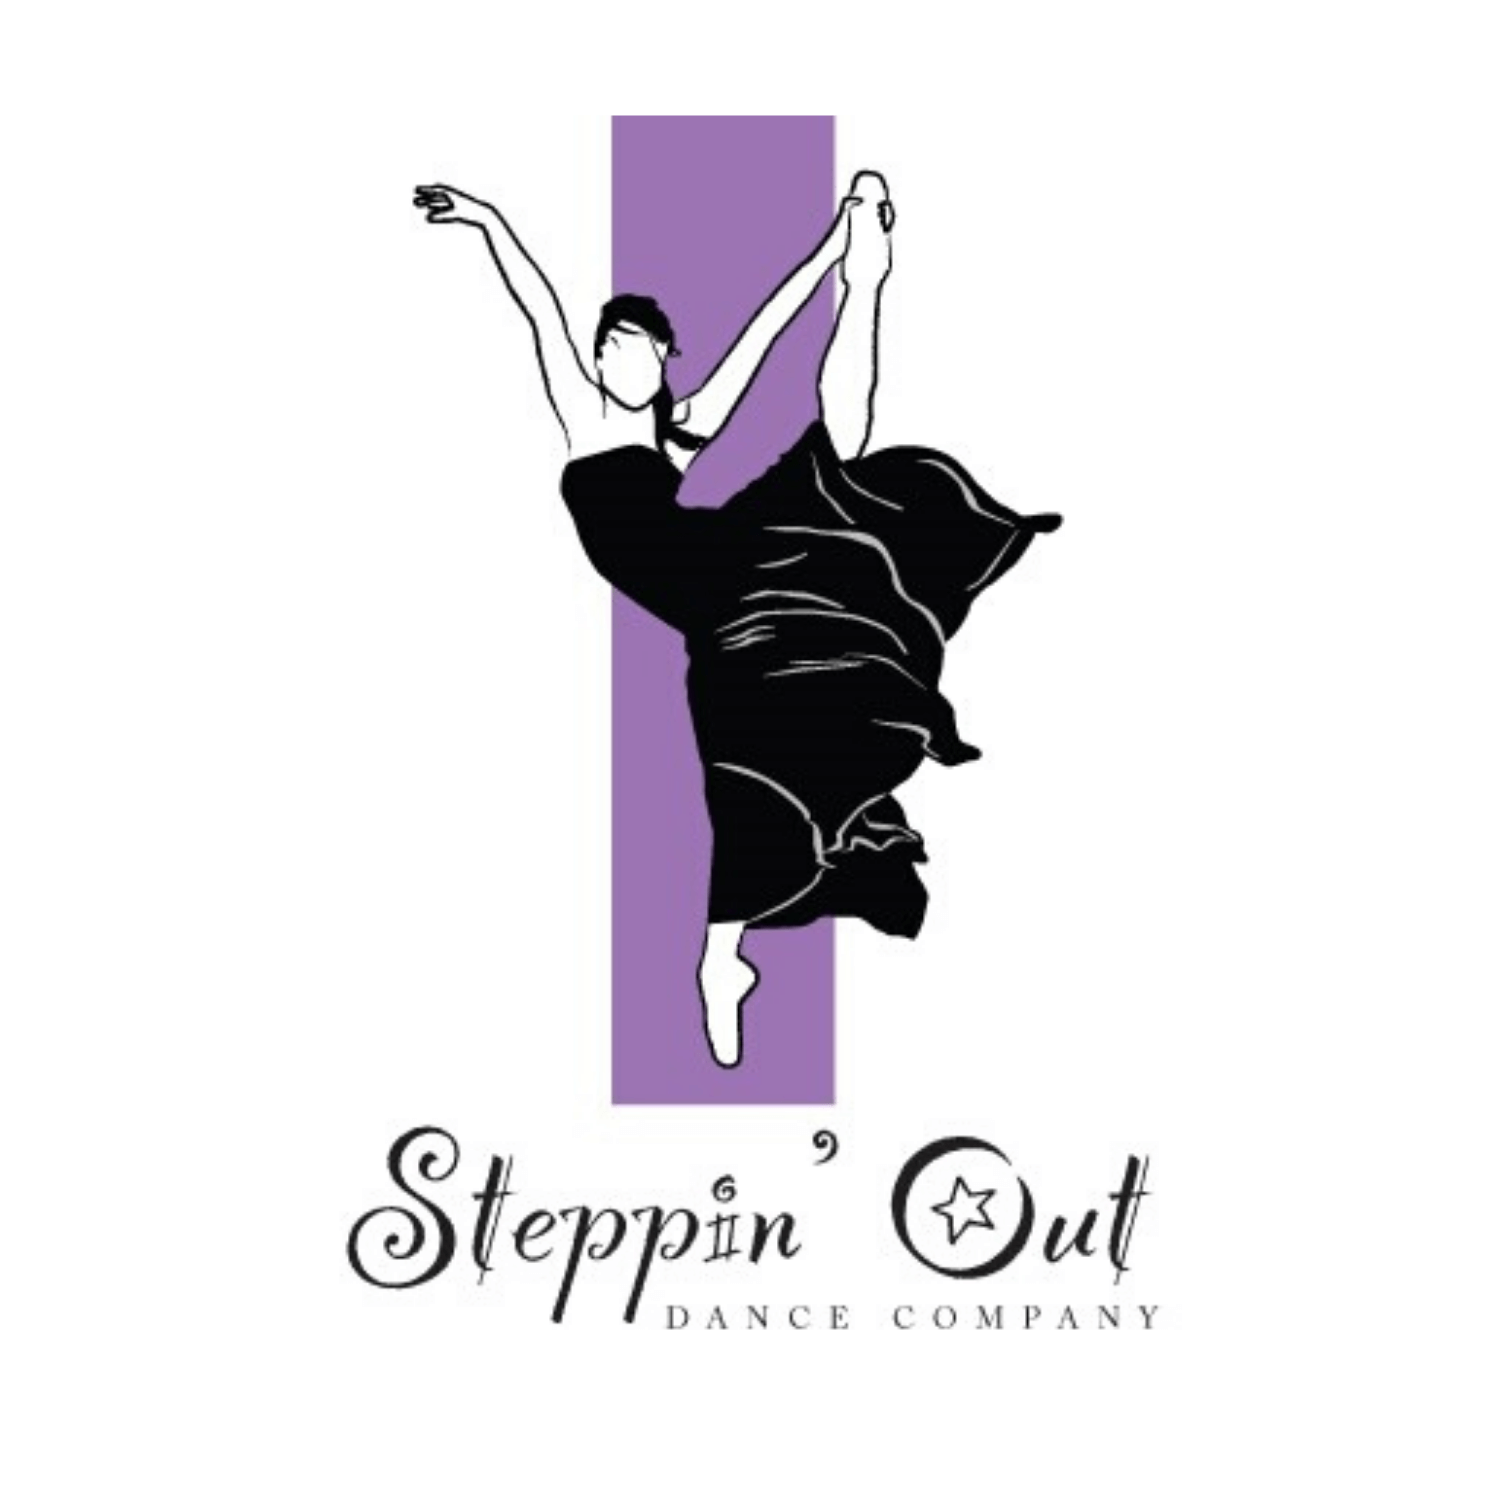 Steppin Out Dance Company Logo